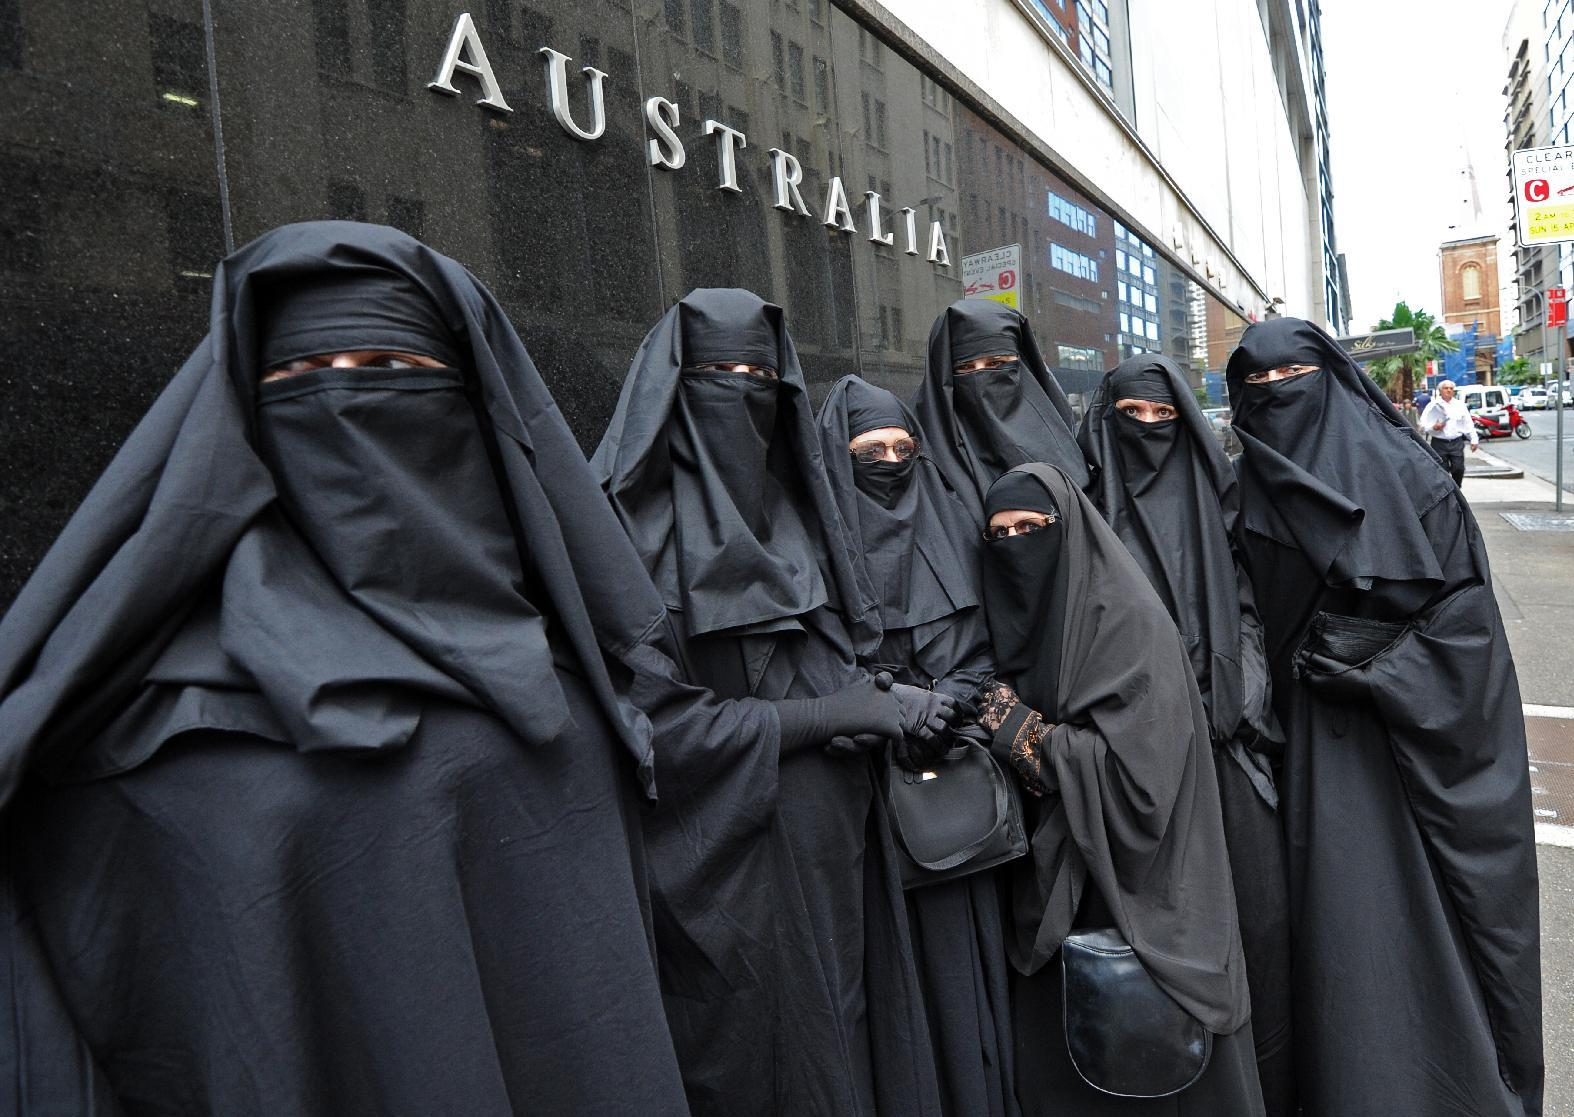 A file photo shows activist group 'Faceless', calling for the banning of conservative Muslim dress in Australia during a rally in Sydney, April 2012 (AFP Photo/Torsten Blackwood)